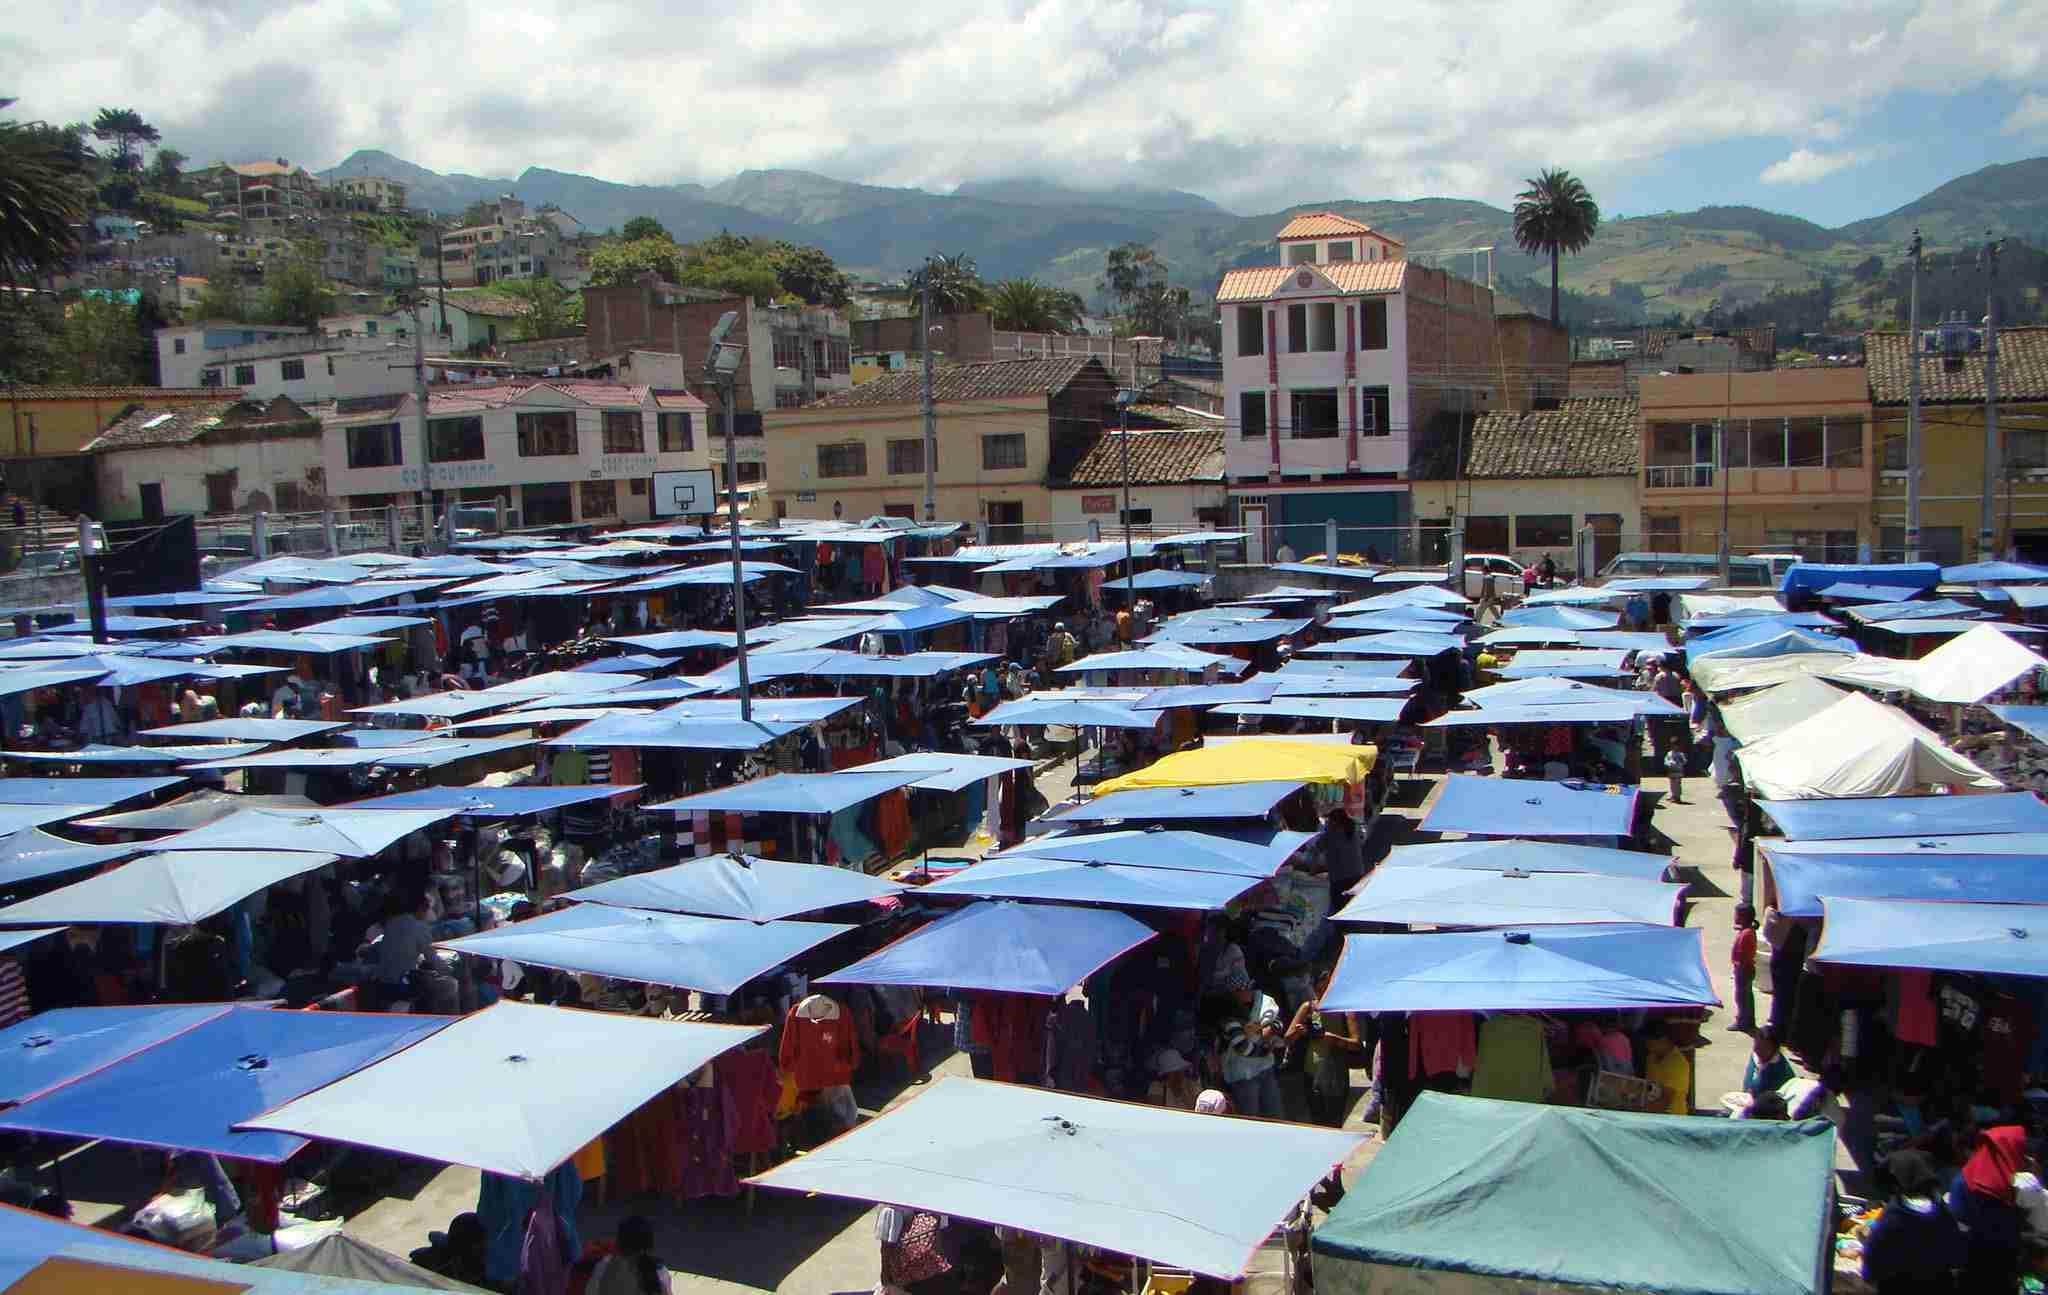 One of the world's best-known outdoor markets is in Otavalo, Ecuador.